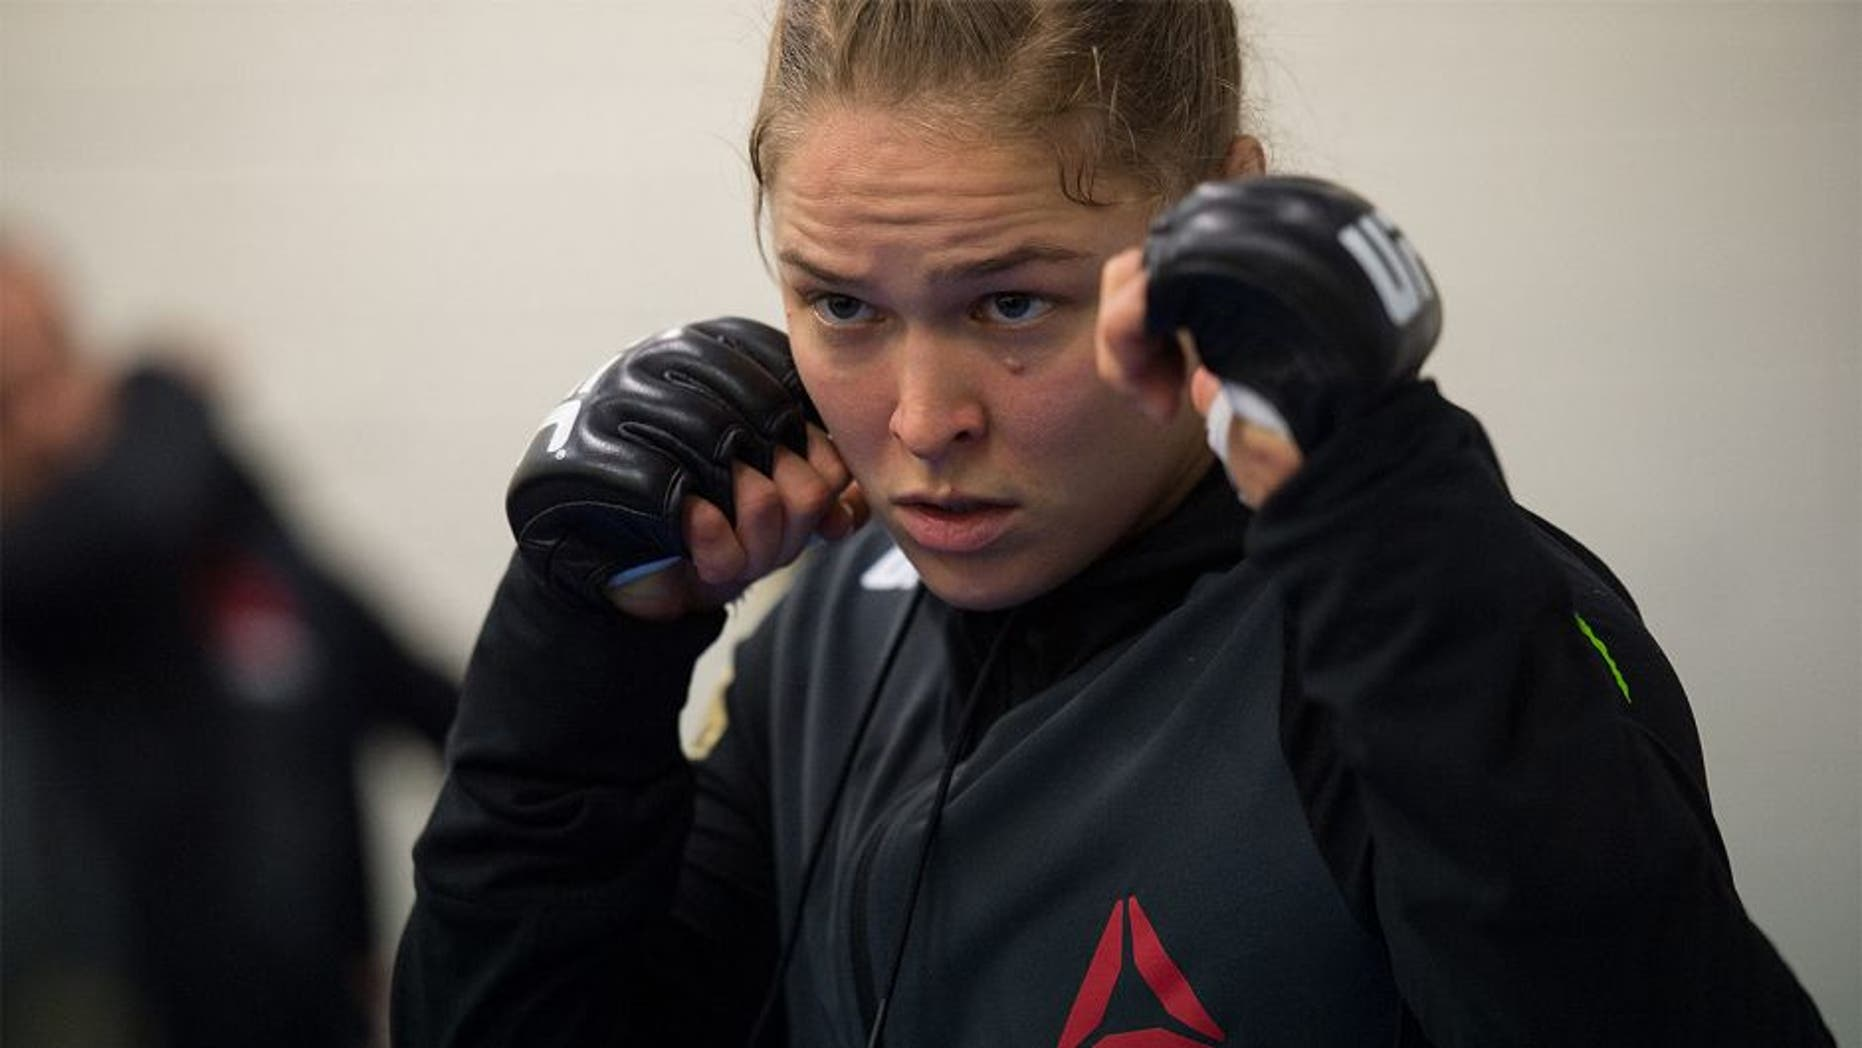 MELBOURNE, AUSTRALIA - NOVEMBER 15: UFC women's bantamweight champion Ronda Rousey of the United States warms up before facing Holly Holm of the United States during the UFC 193 event at Etihad Stadium on November 15, 2015 in Melbourne, Australia. (Photo by Brandon Magnus/Zuffa LLC/Zuffa LLC via Getty Images)